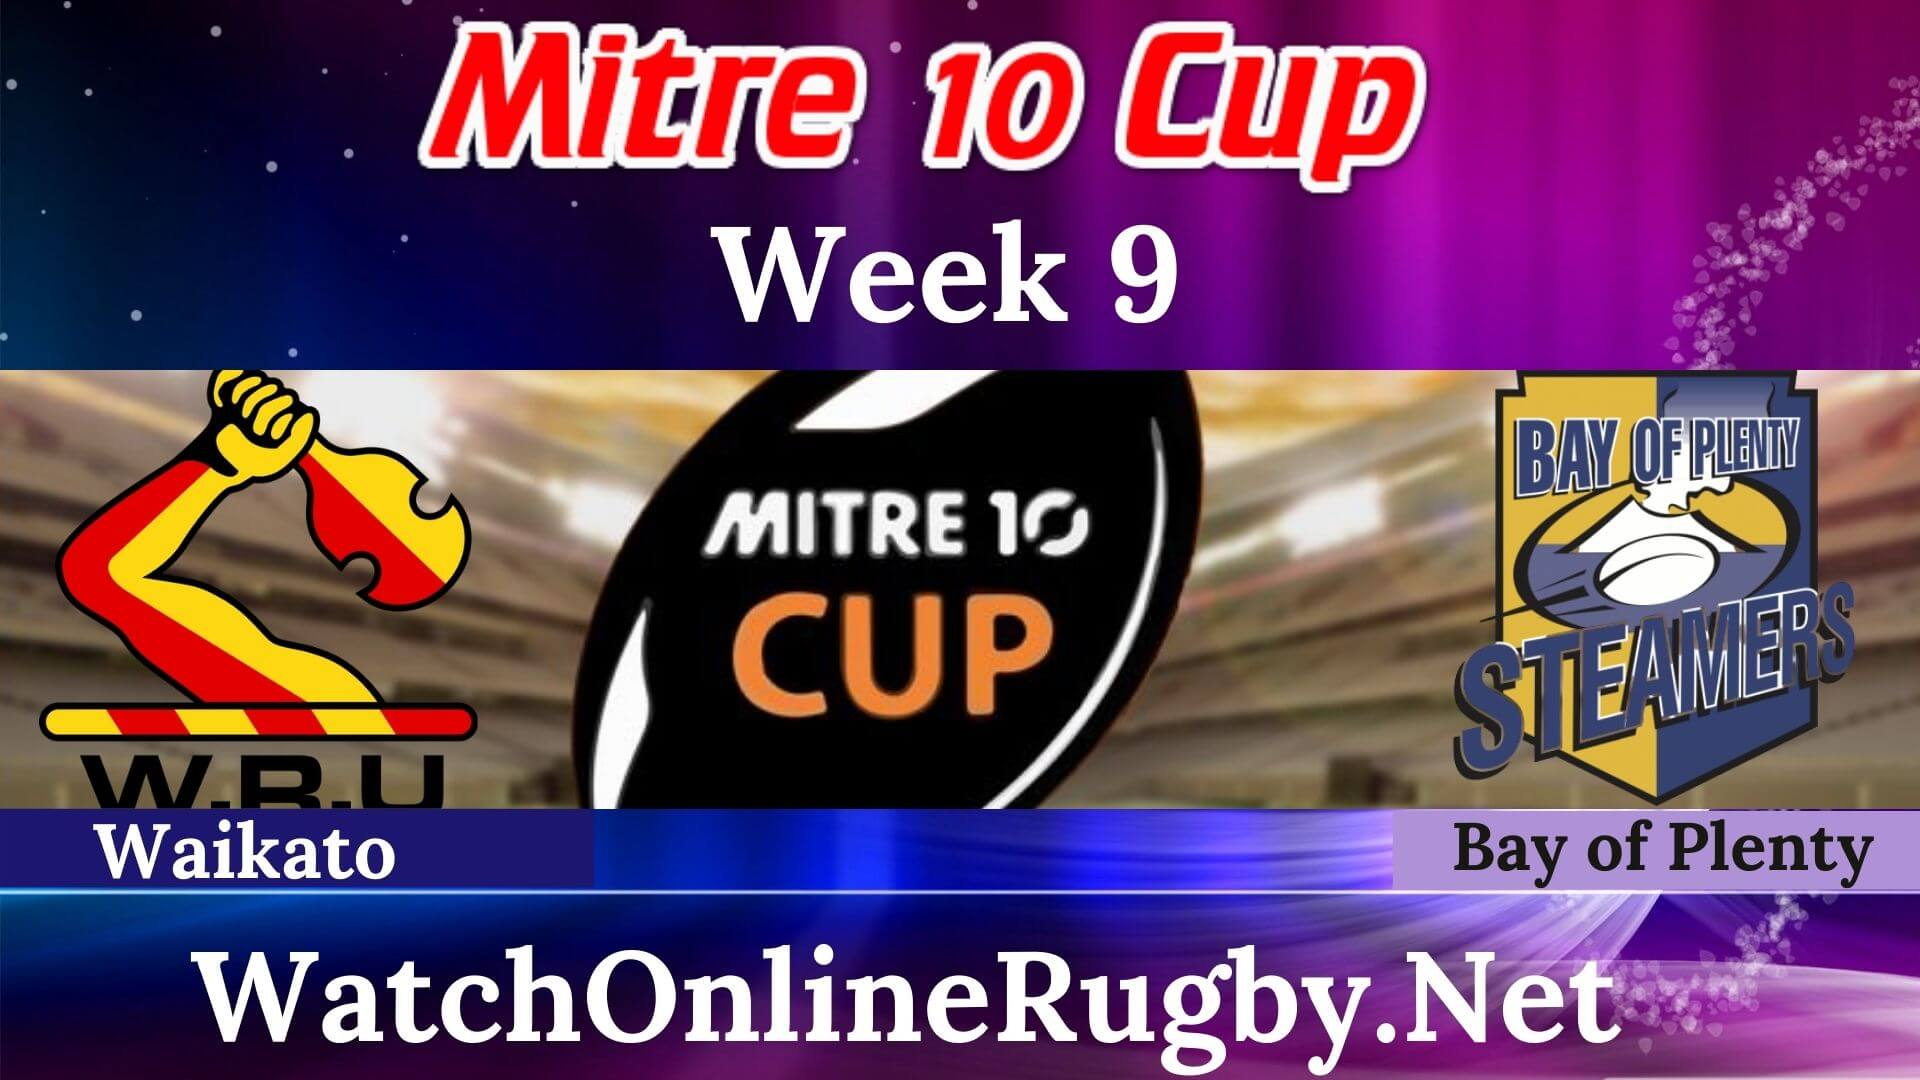 Waikato Vs Bay of Plenty Live Stream Mitre 10 Cup